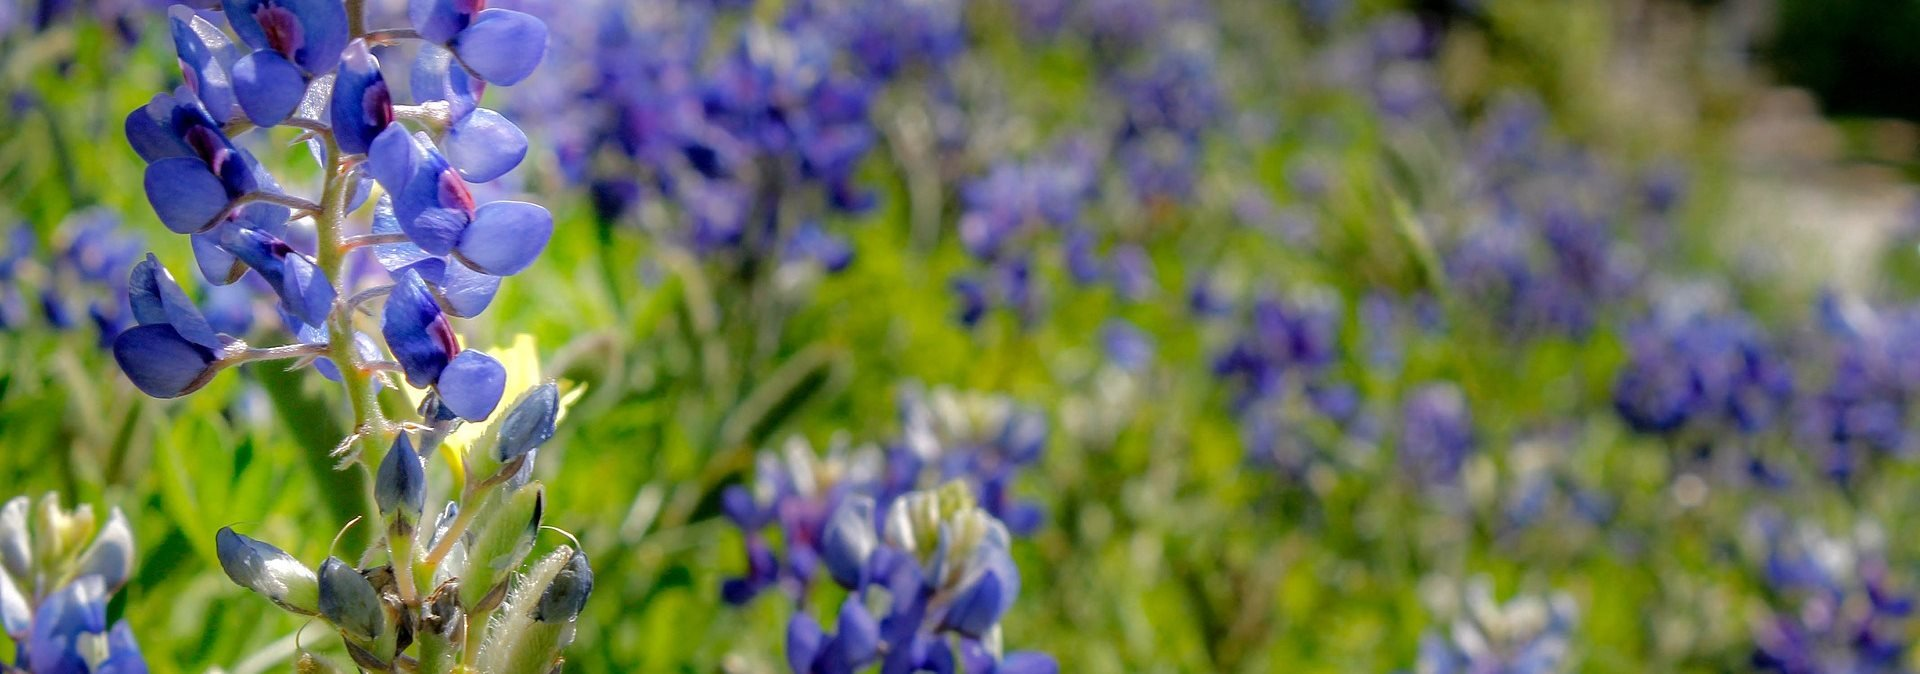 Stock Image Close up of Bluebonnet in a Field